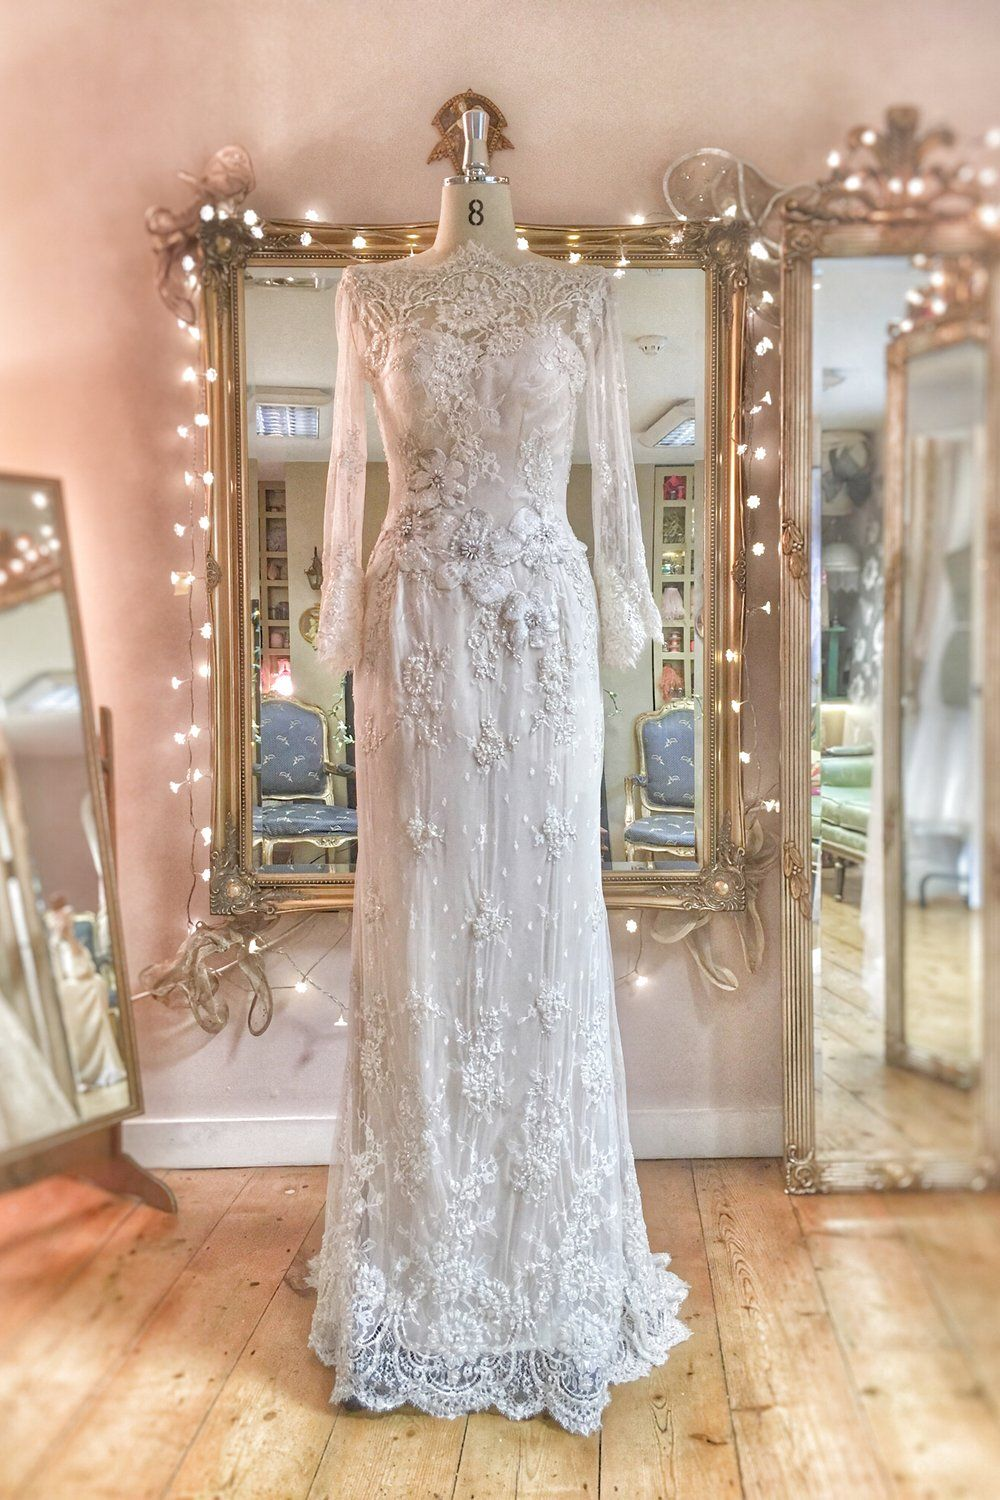 Ivory silk and lace wedding dress  Arieneu an elegantly dramatic pale ivory full length wedding dress